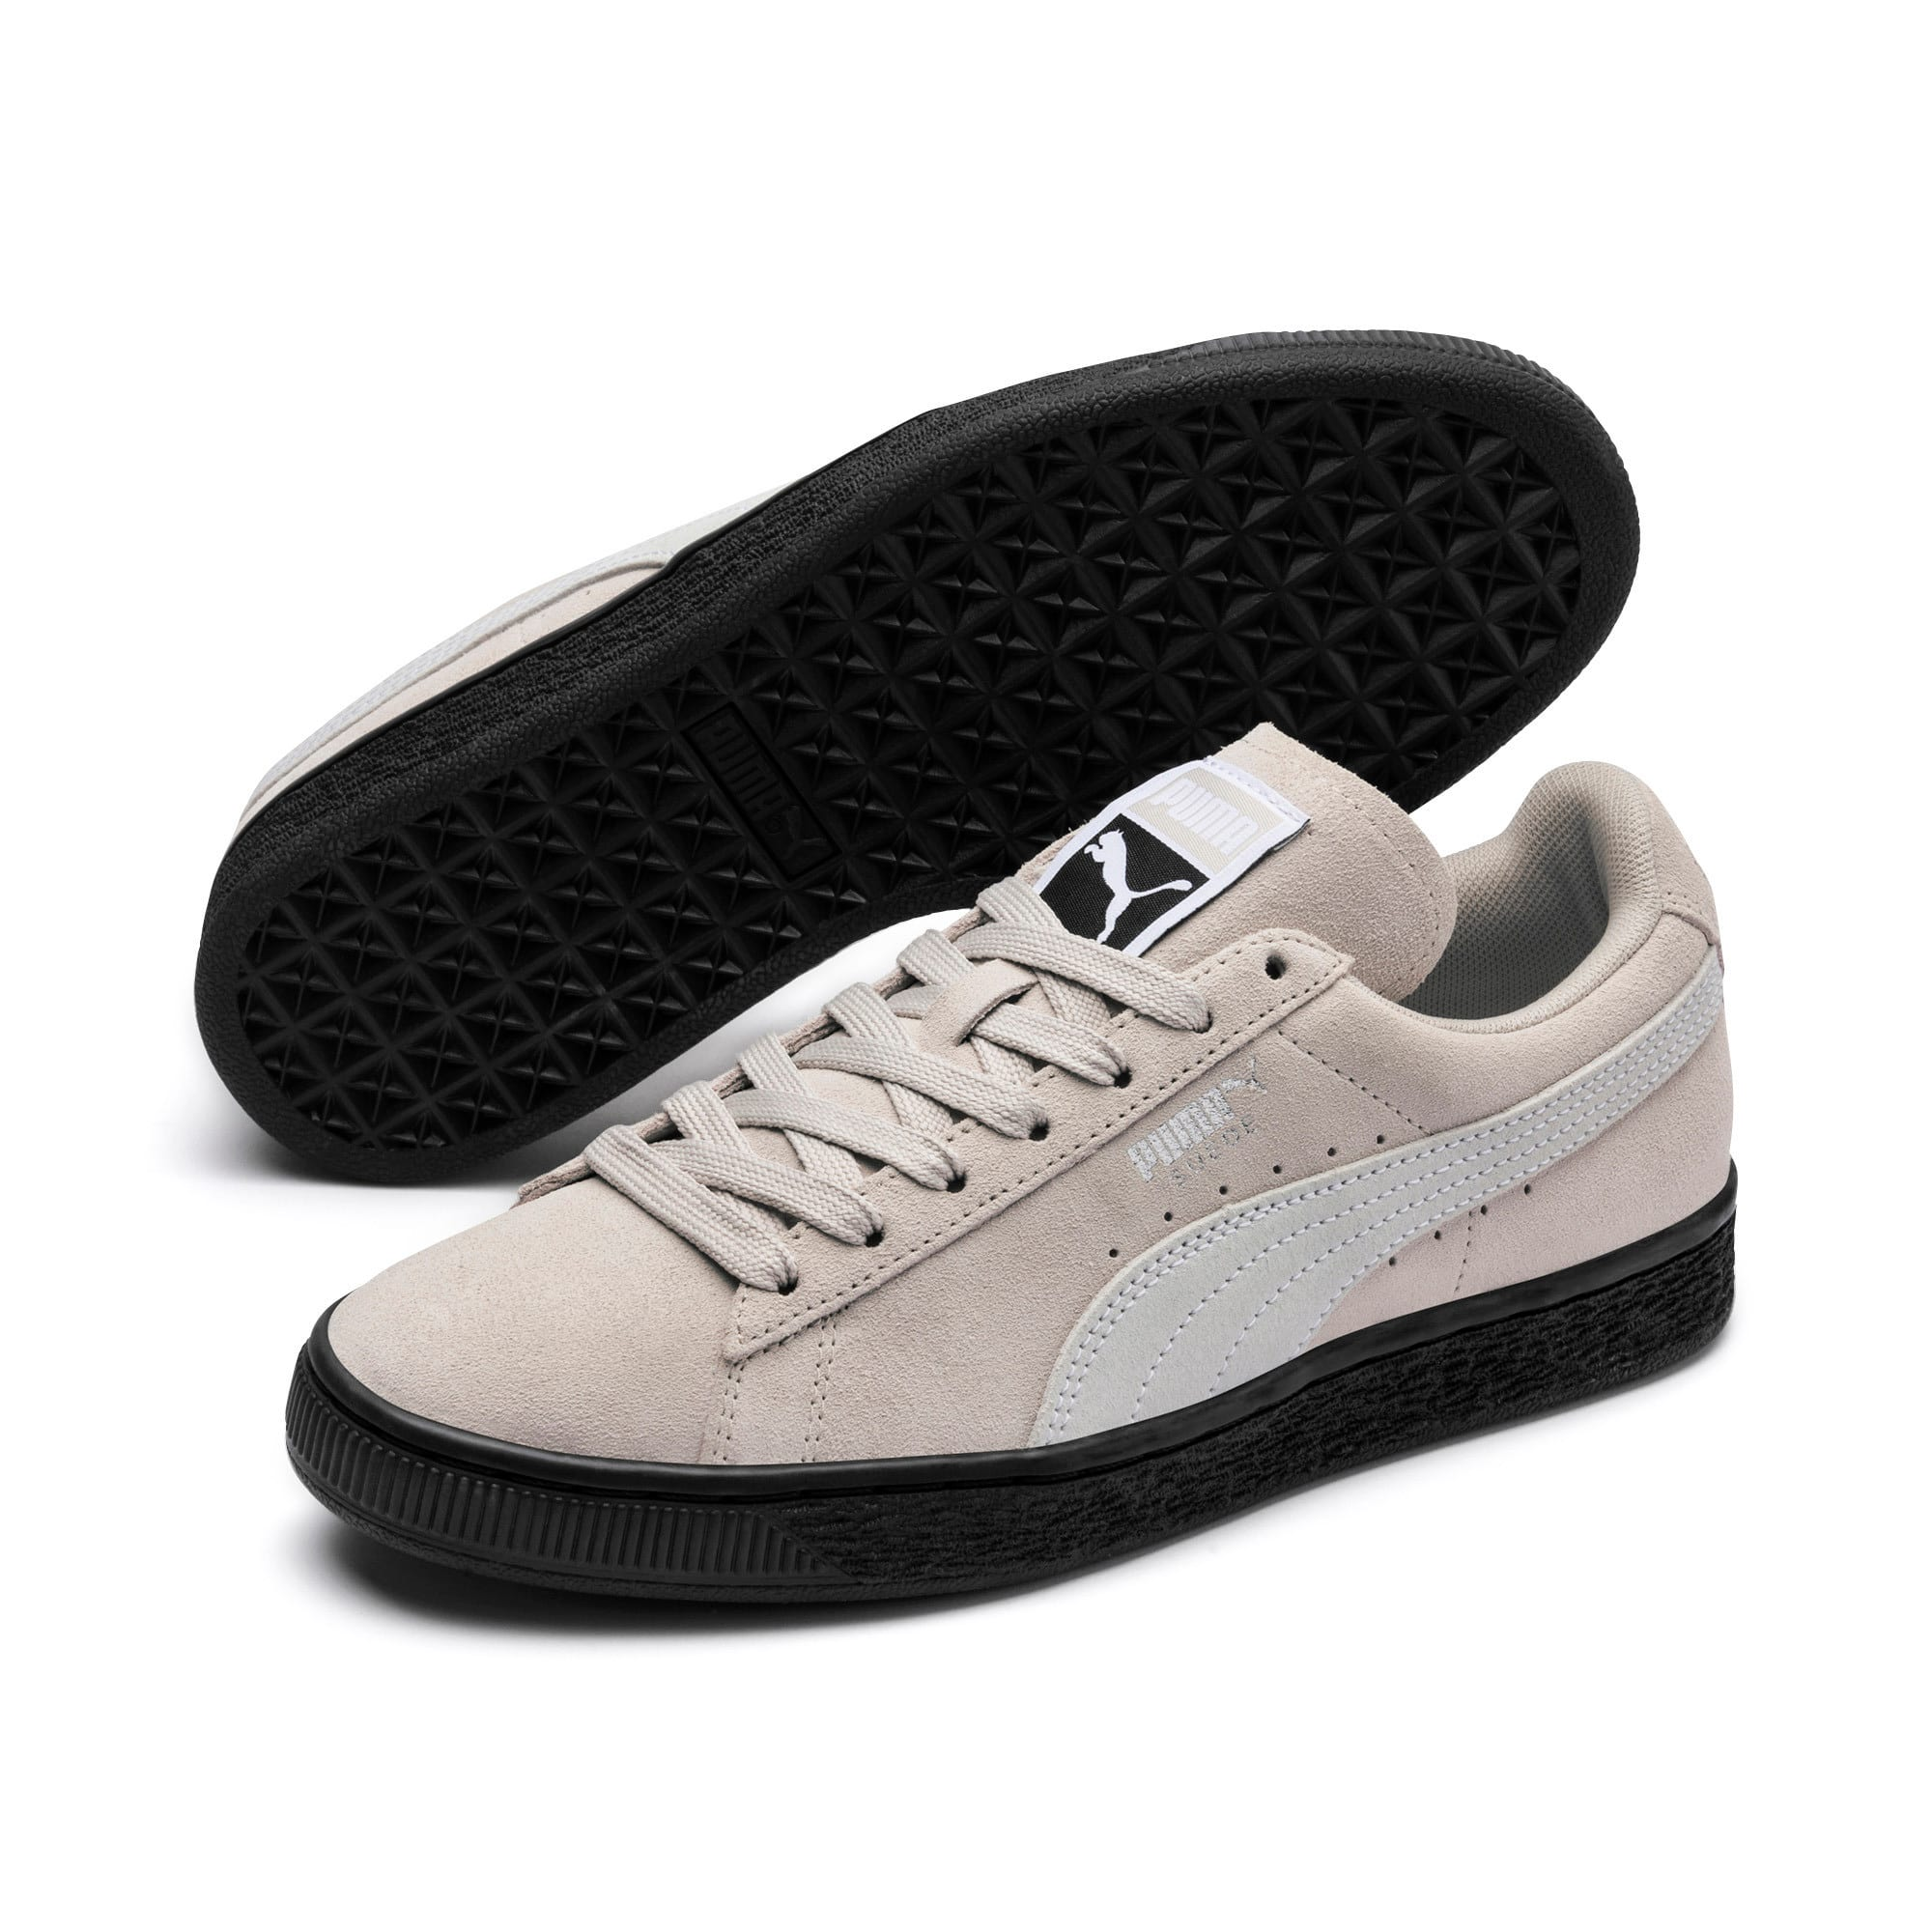 Thumbnail 2 of Suede Classic Women's Sneakers, Silver Gray-Puma White, medium